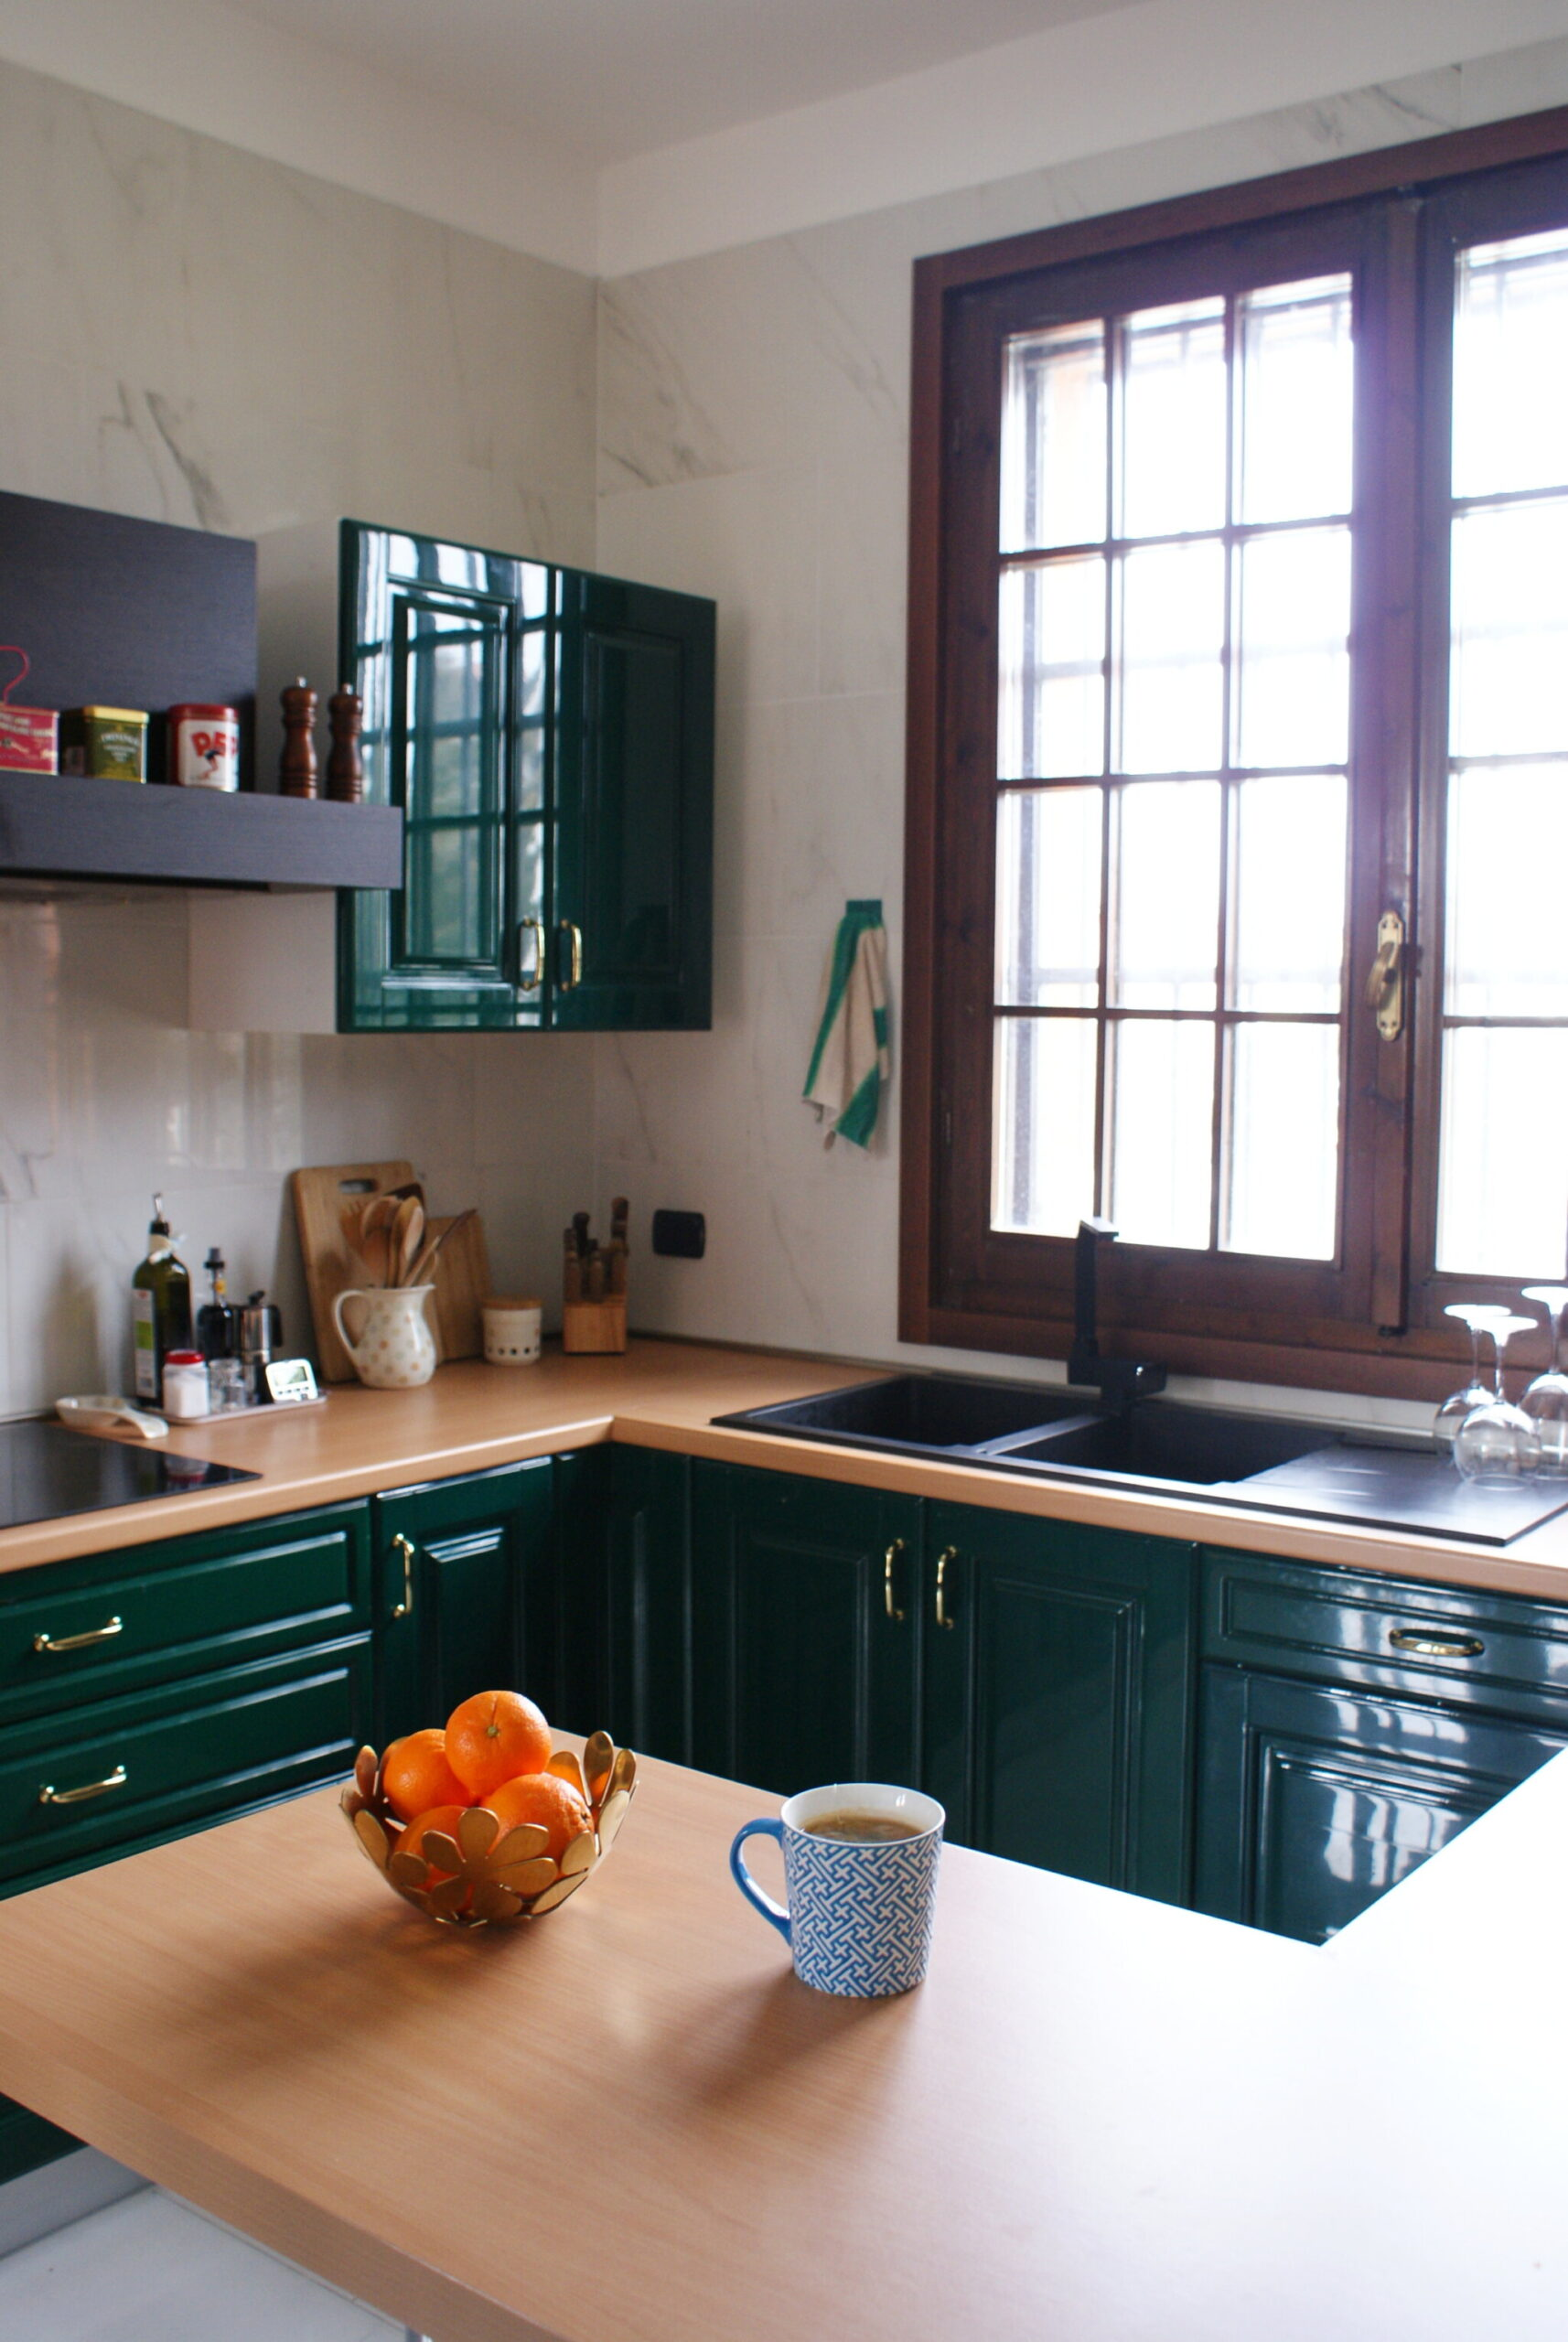 HOW TO DECLUTTER AND ORGANIZE YOUR KITCHEN TO GET A MINIMALIST SPACE IN ONE DAY!